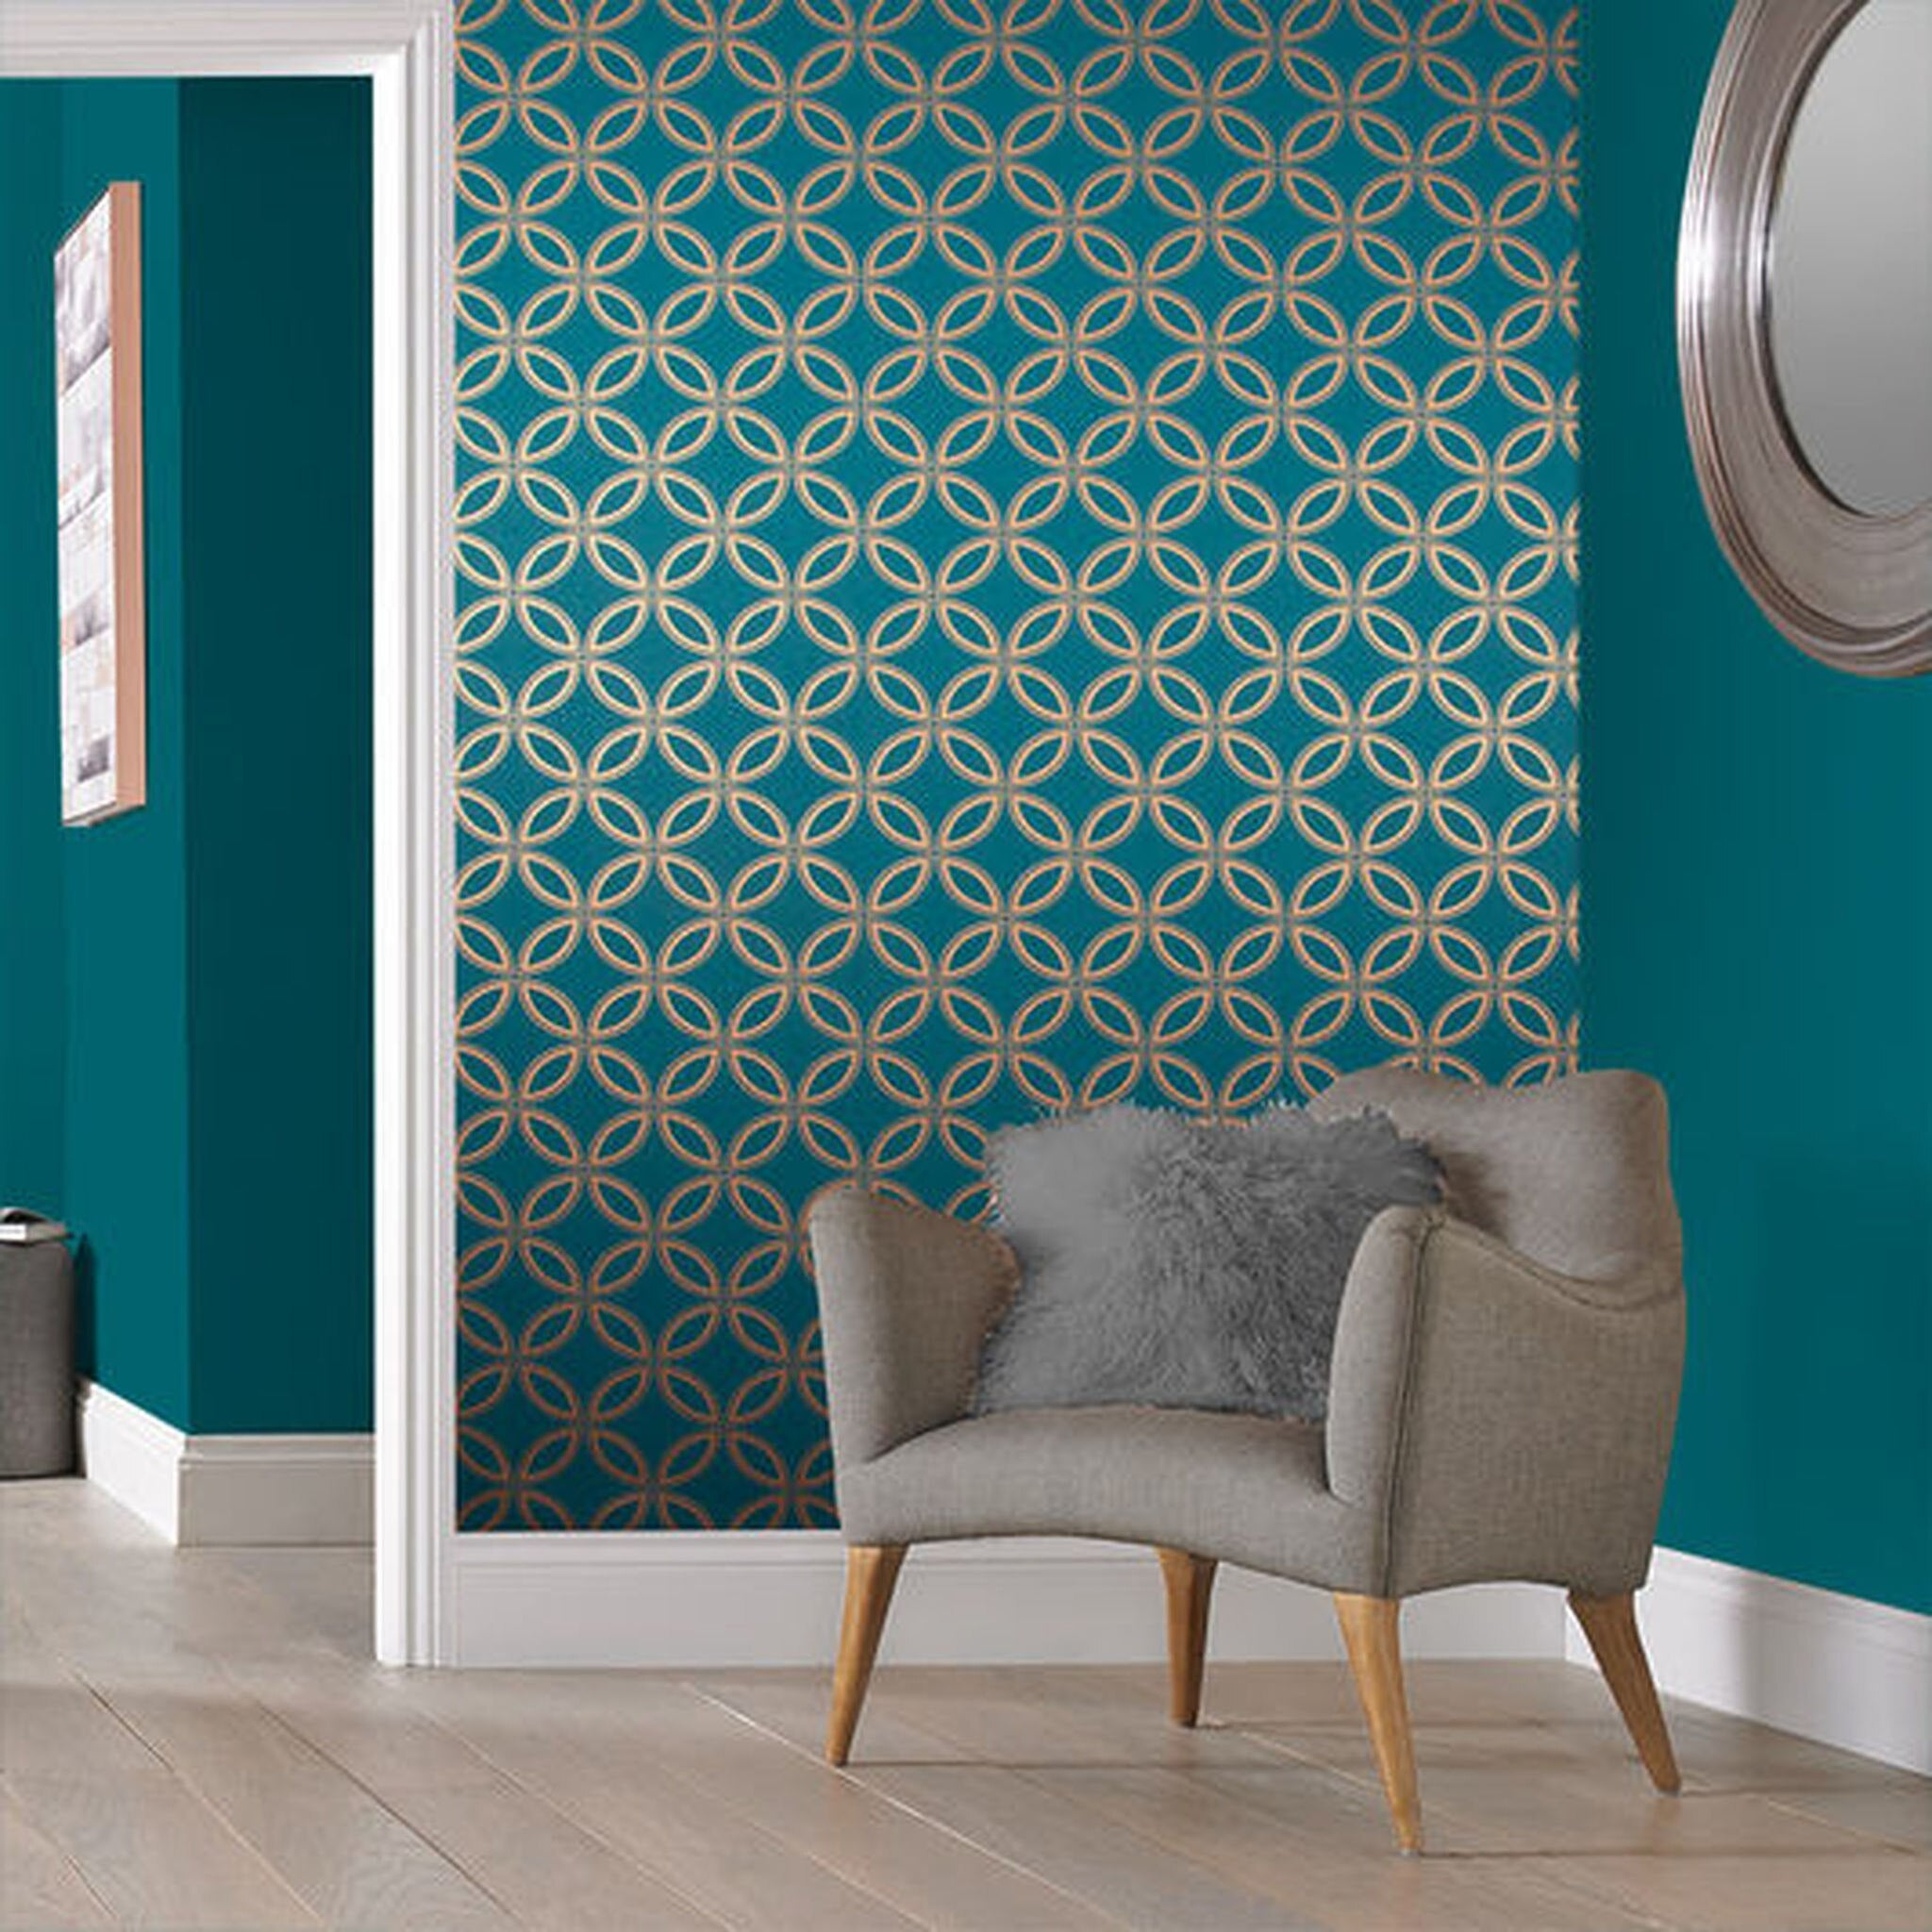 Eternity Teal & Copper Wallpaper